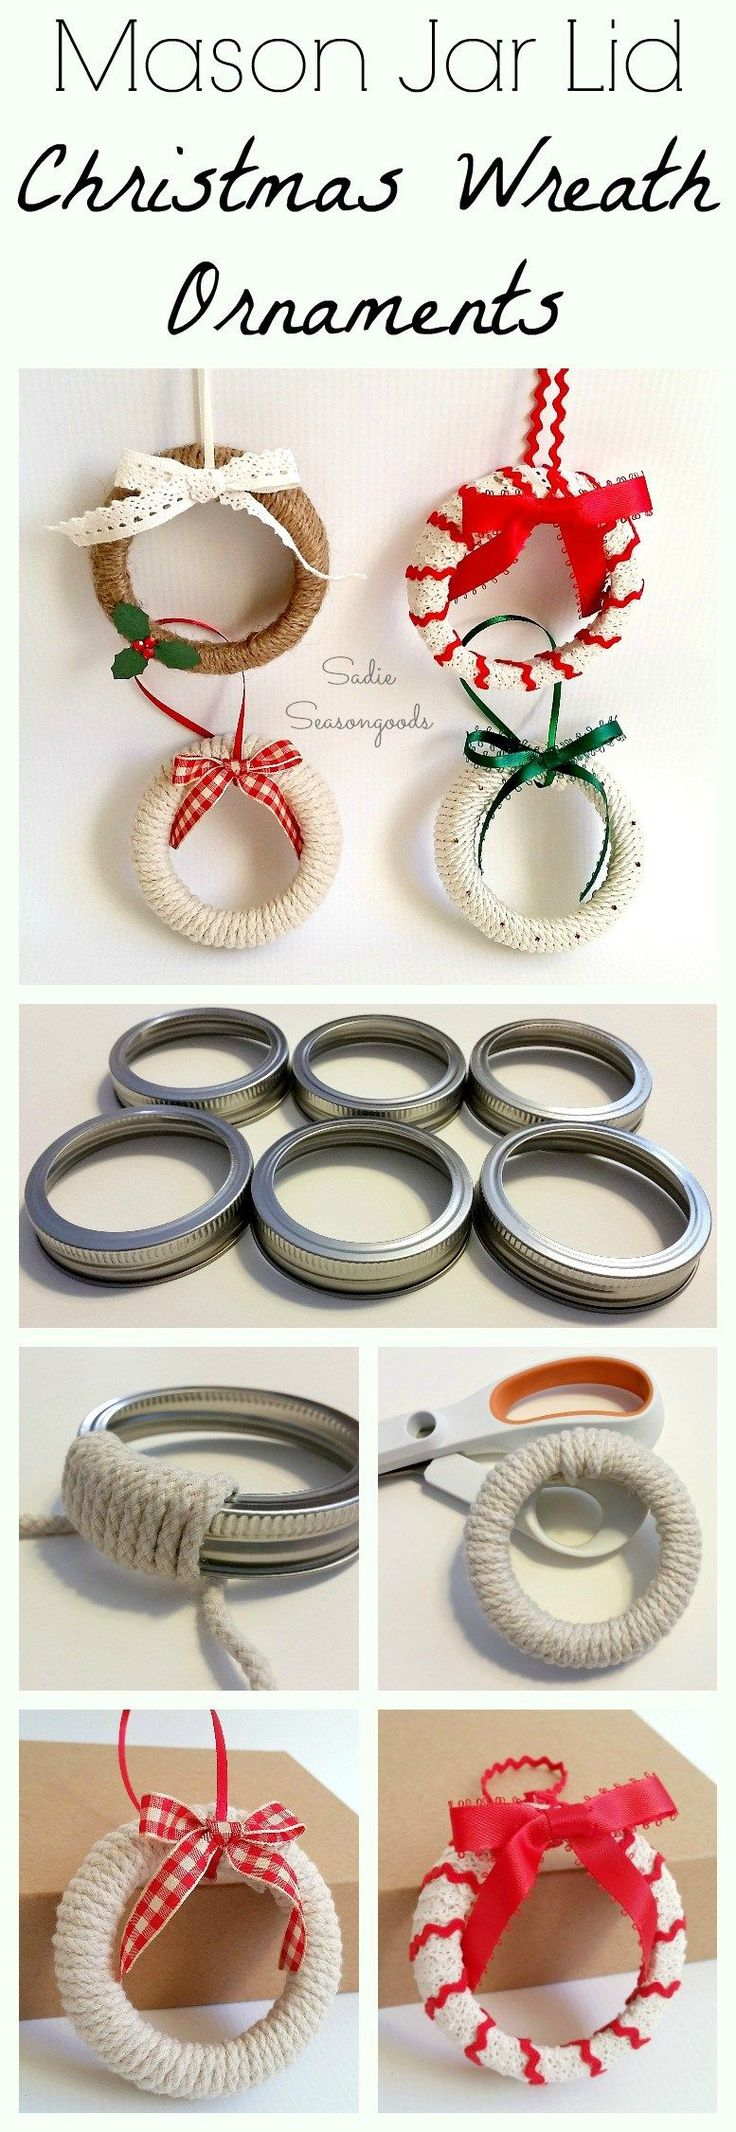 DIY Christmas Wreath ornaments from repurposed mason jar lid rings